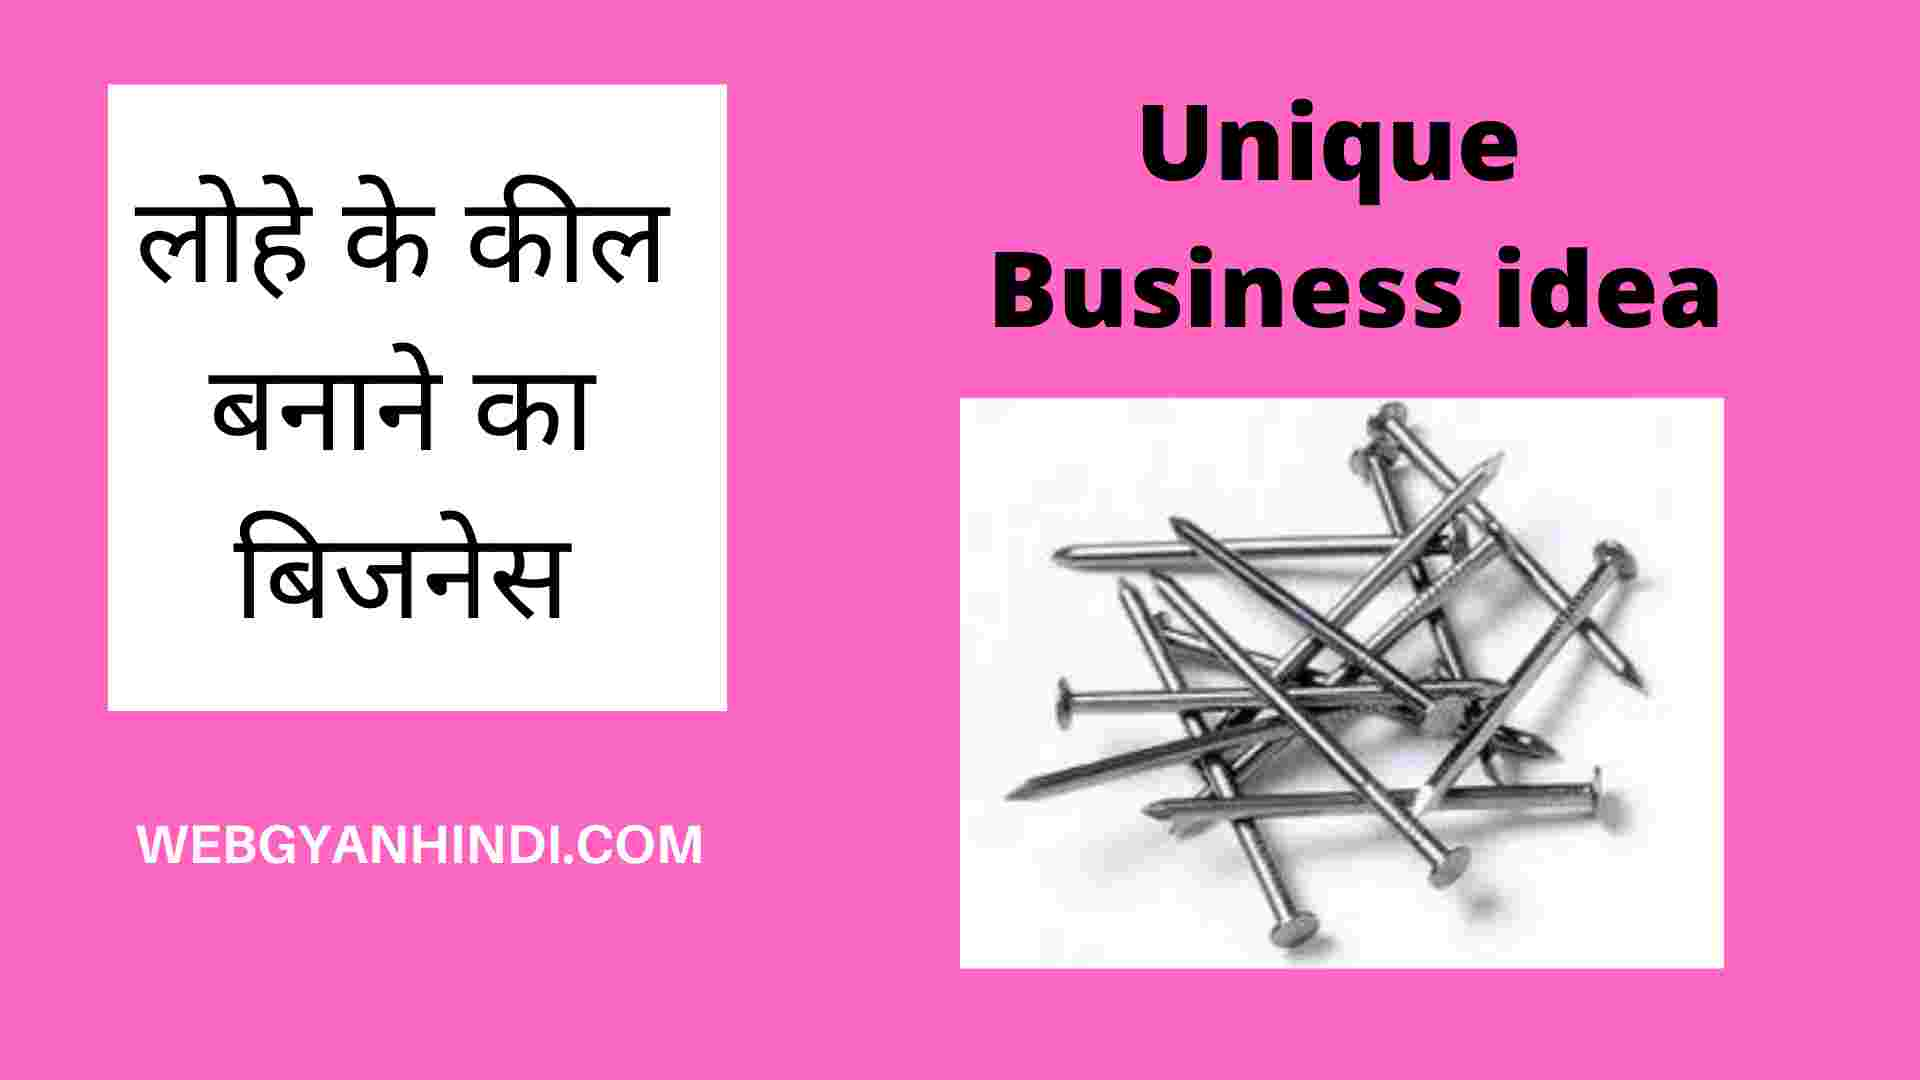 You are currently viewing लोहे के कील बनाने का उद्योग | Wire nails manufacturing Business